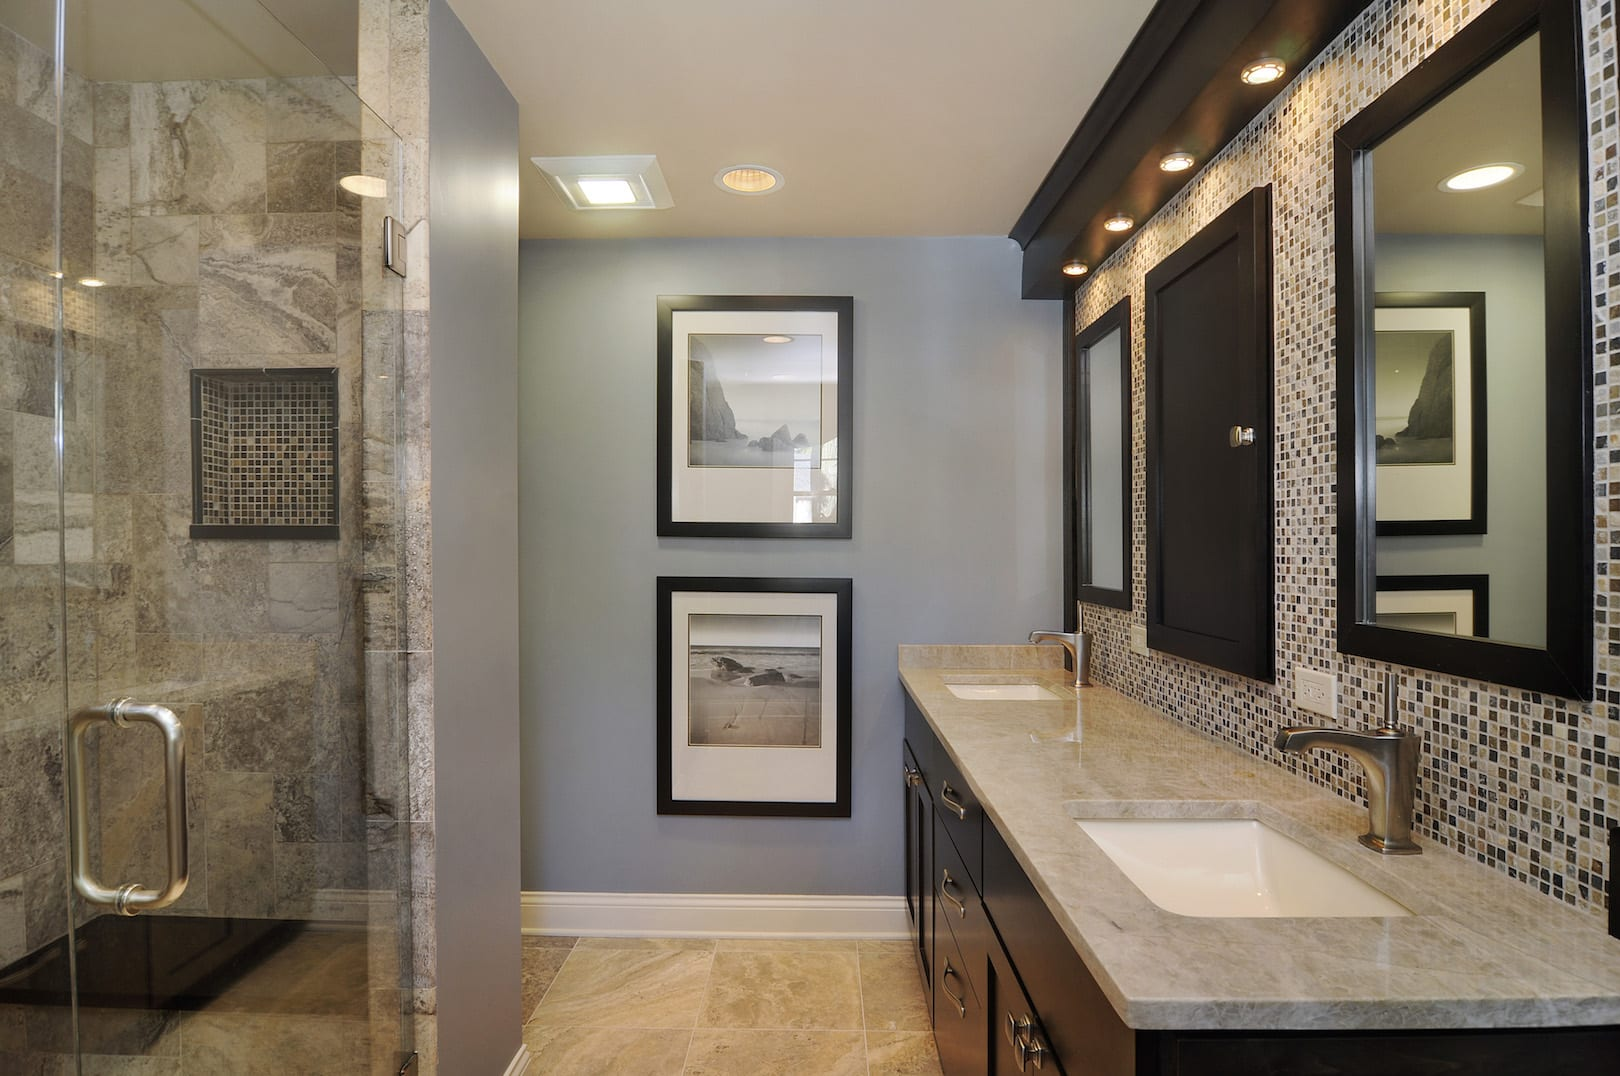 Bathroom Remodeling Chicago Il Concept expert friendly bathroom remodeling | bathroom design and build